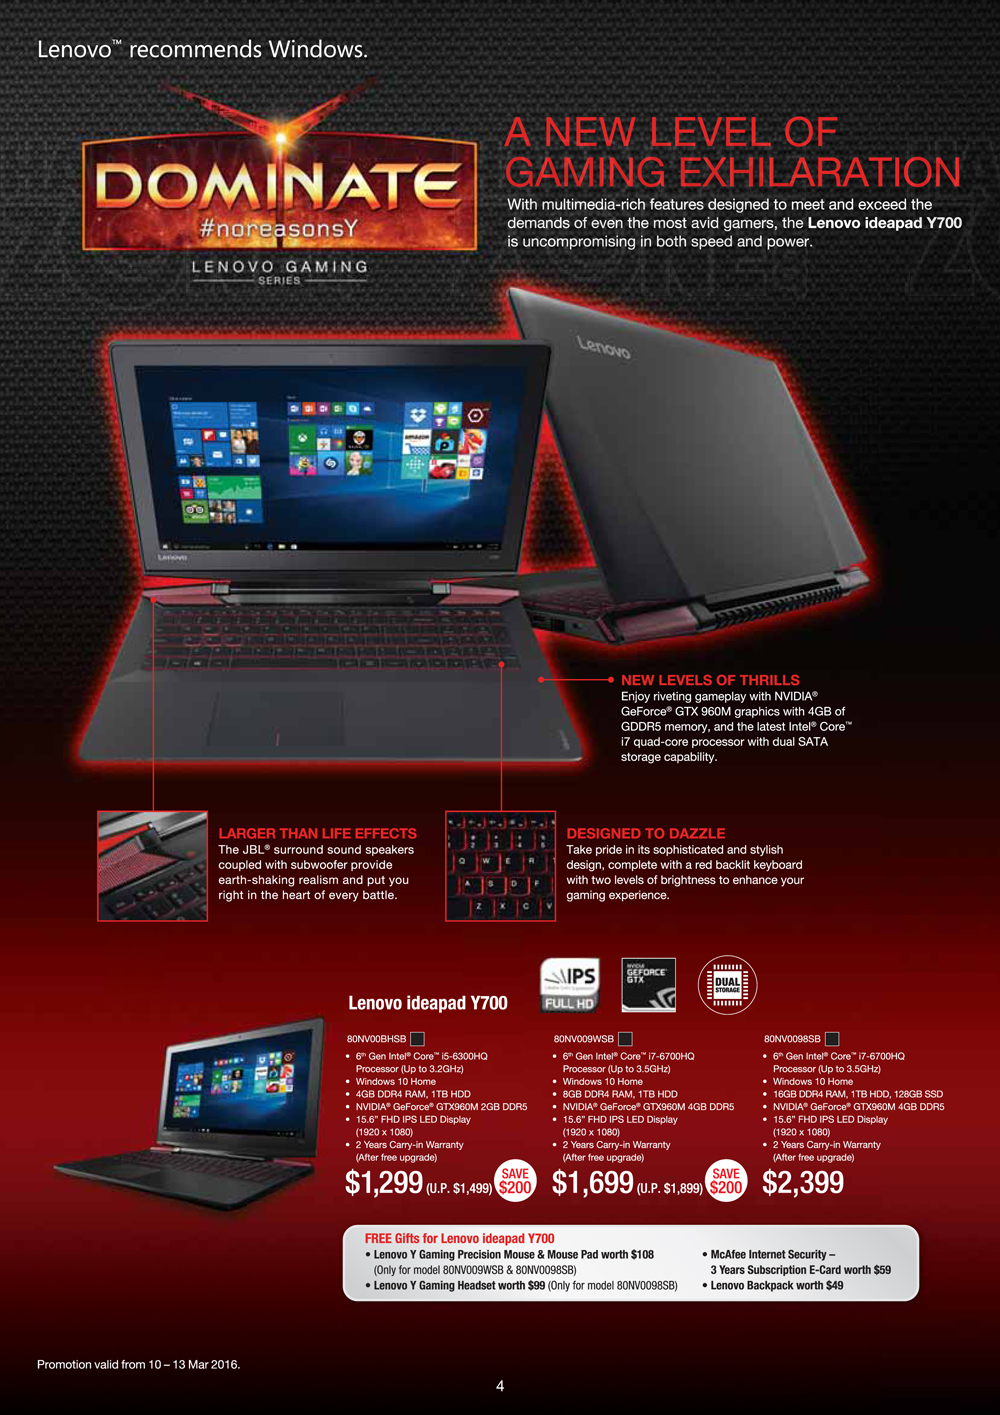 Lenovo Ideapad Y700 Brochures from IT Show 2016 Singapore on